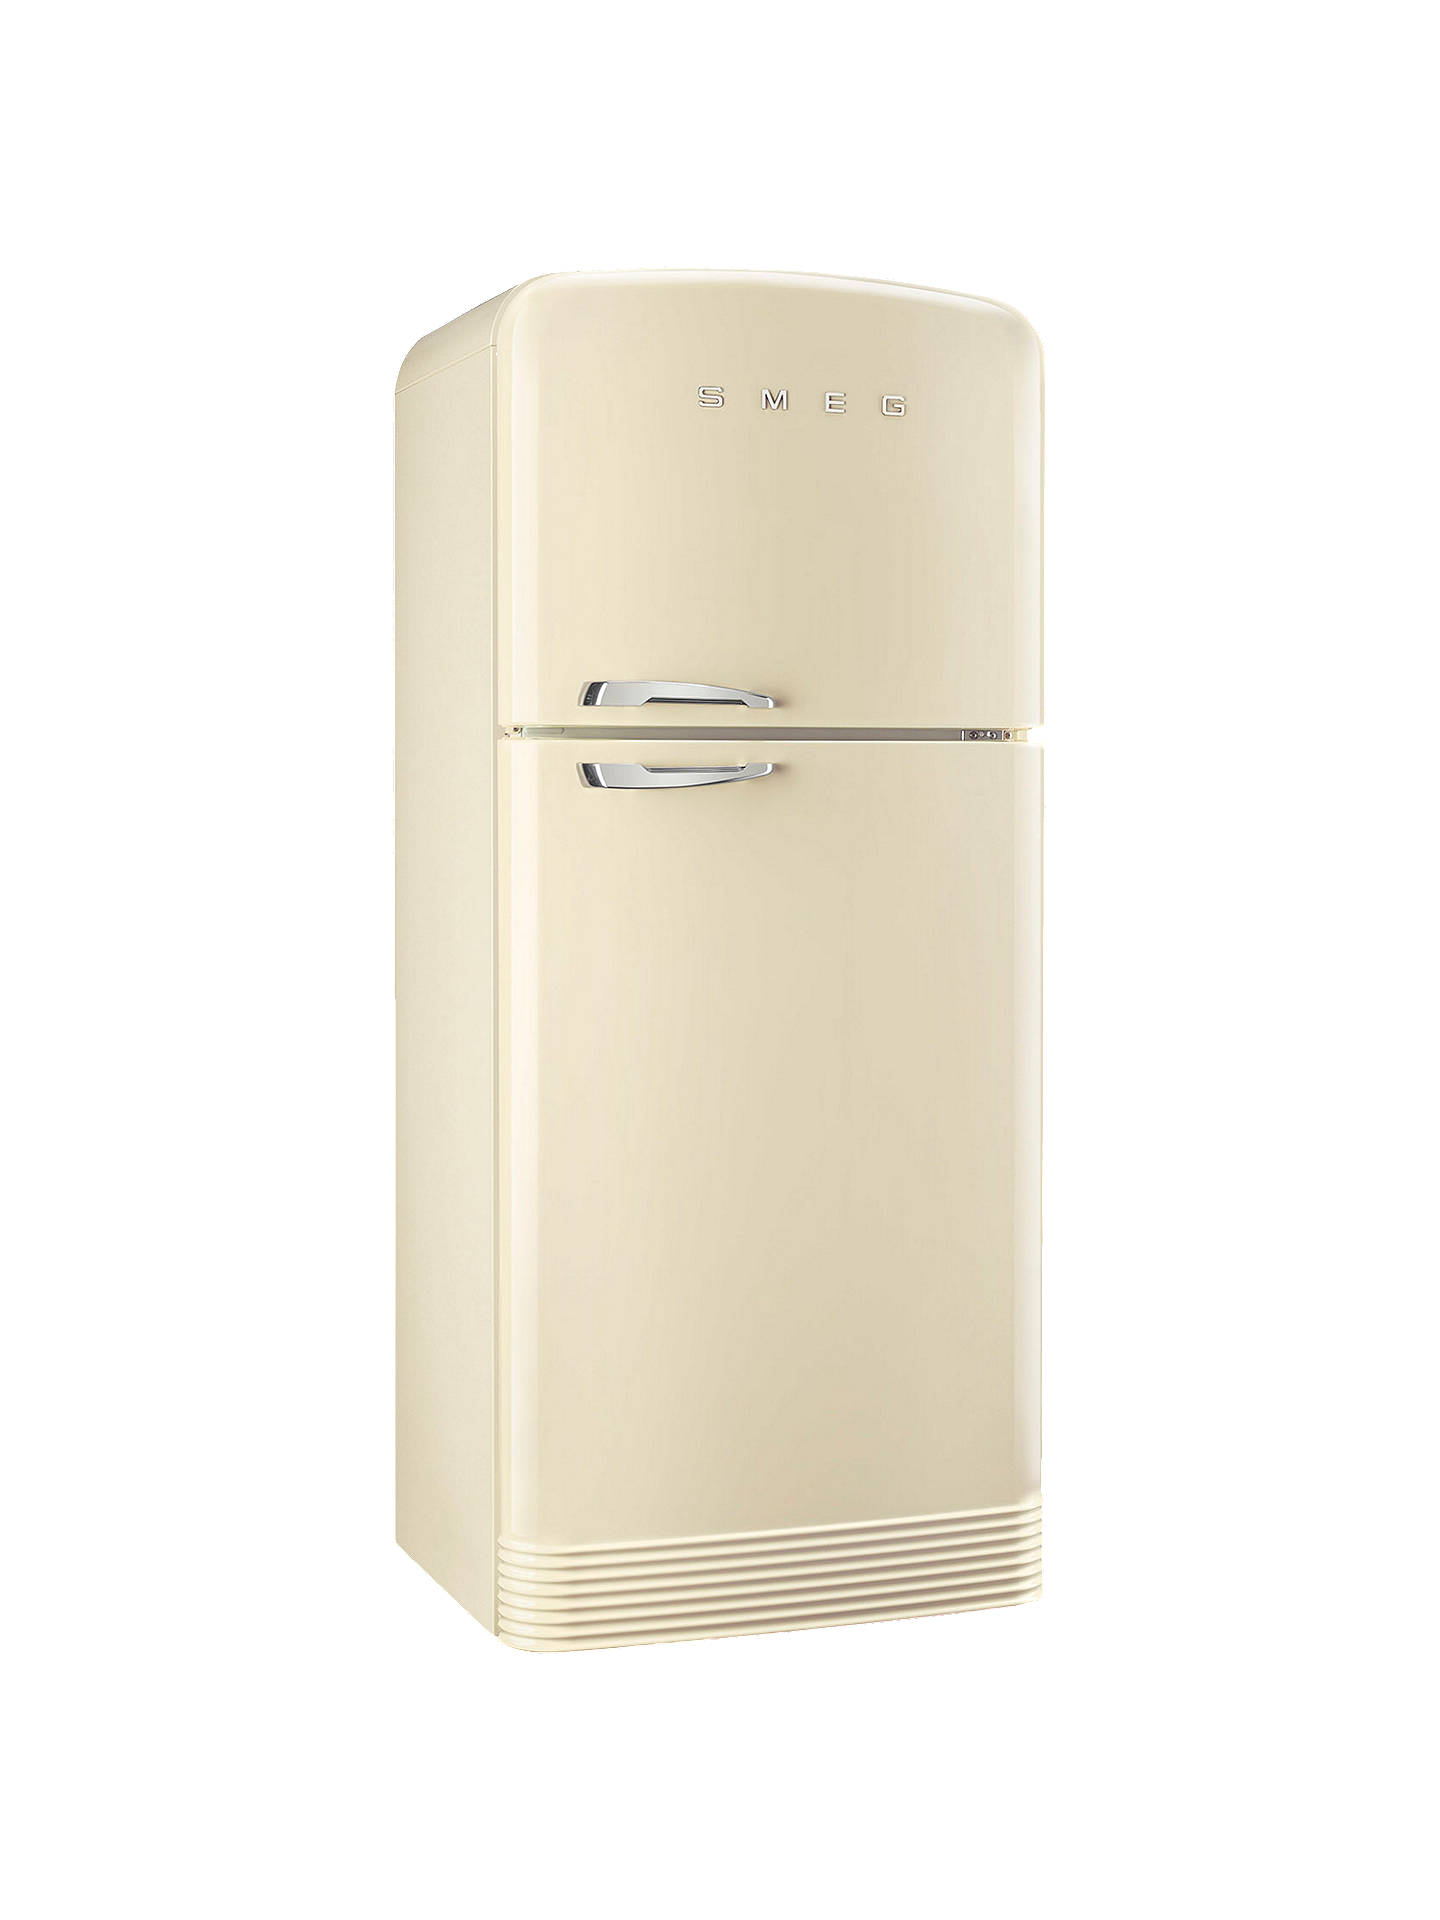 BuySmeg FAB50RCR Fridge Freezer, A++ Energy Rating, Right-Hand Hinge, 80cm Wide, Cream Online at johnlewis.com